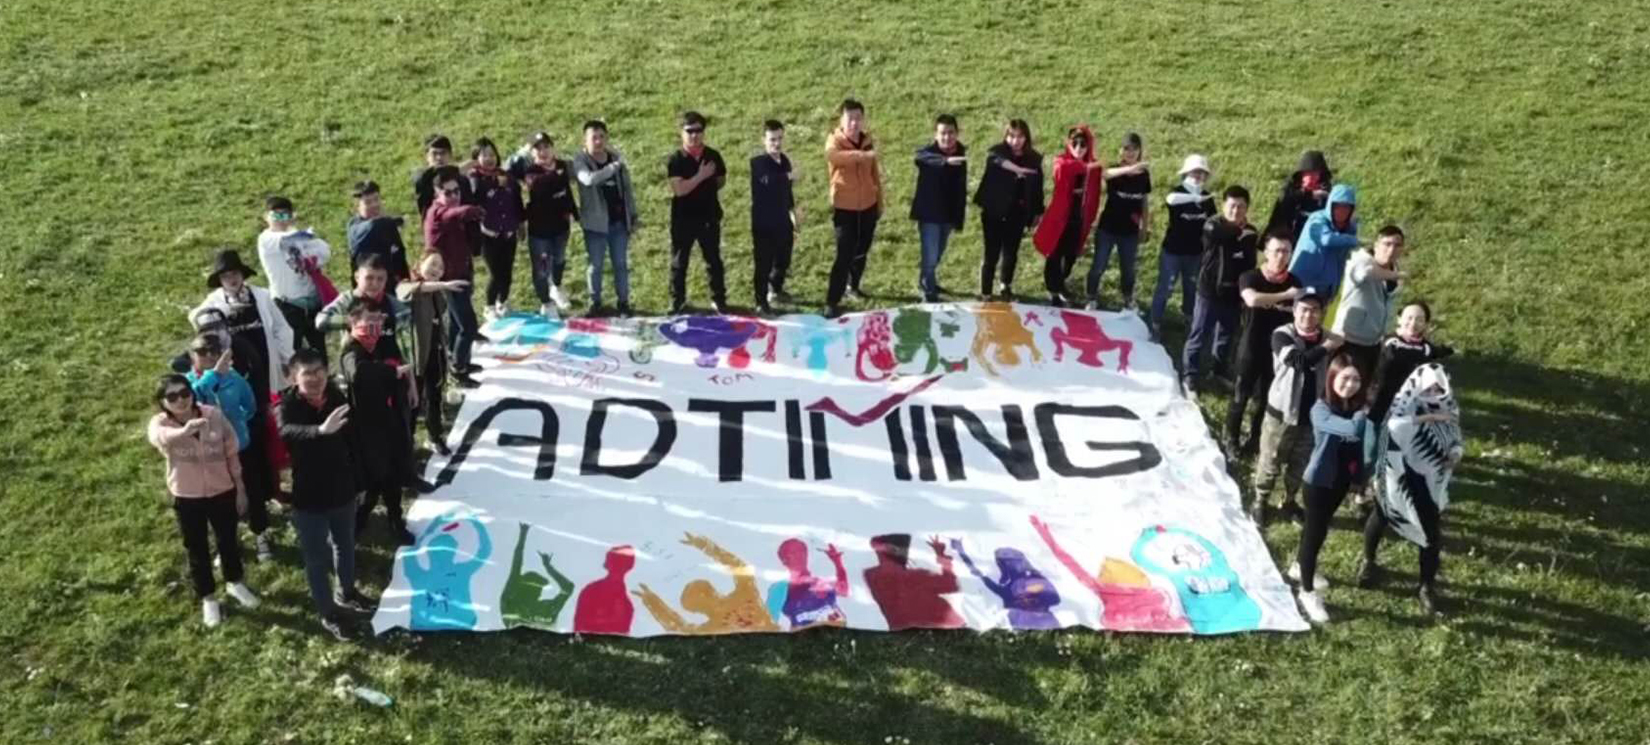 AdTiming Team at Grasslands Adventure